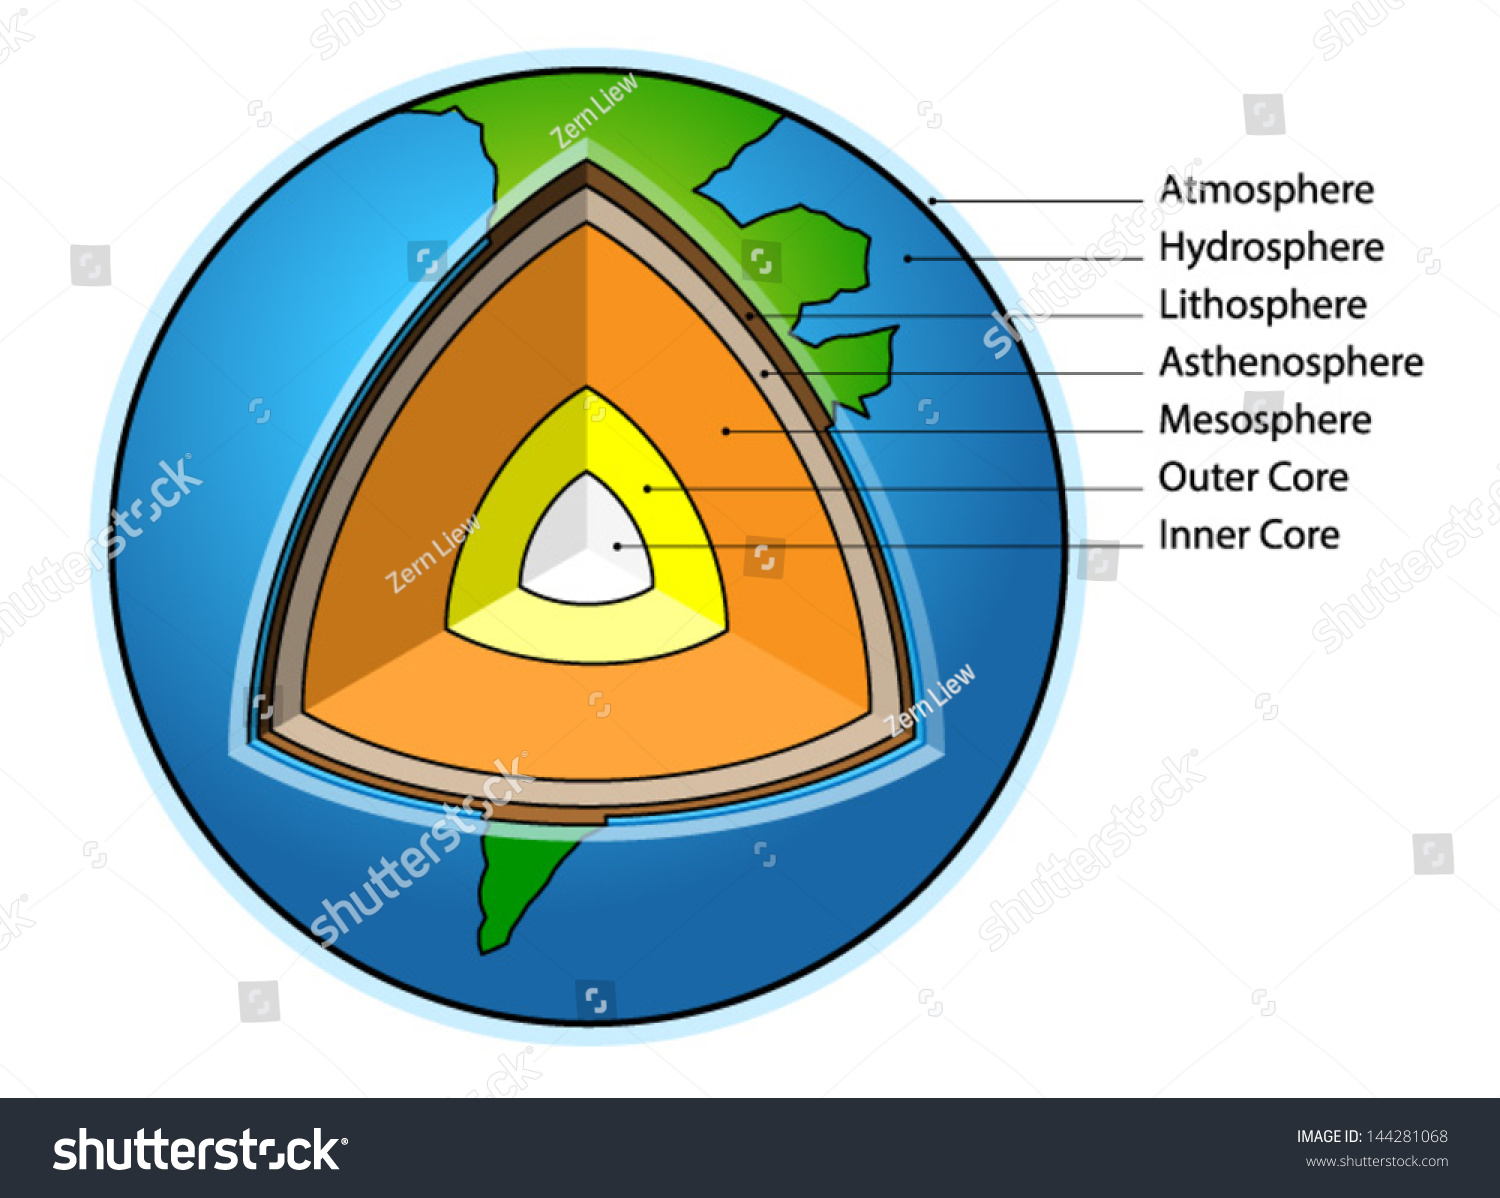 hight resolution of sectional diagram showing the structure of the earth